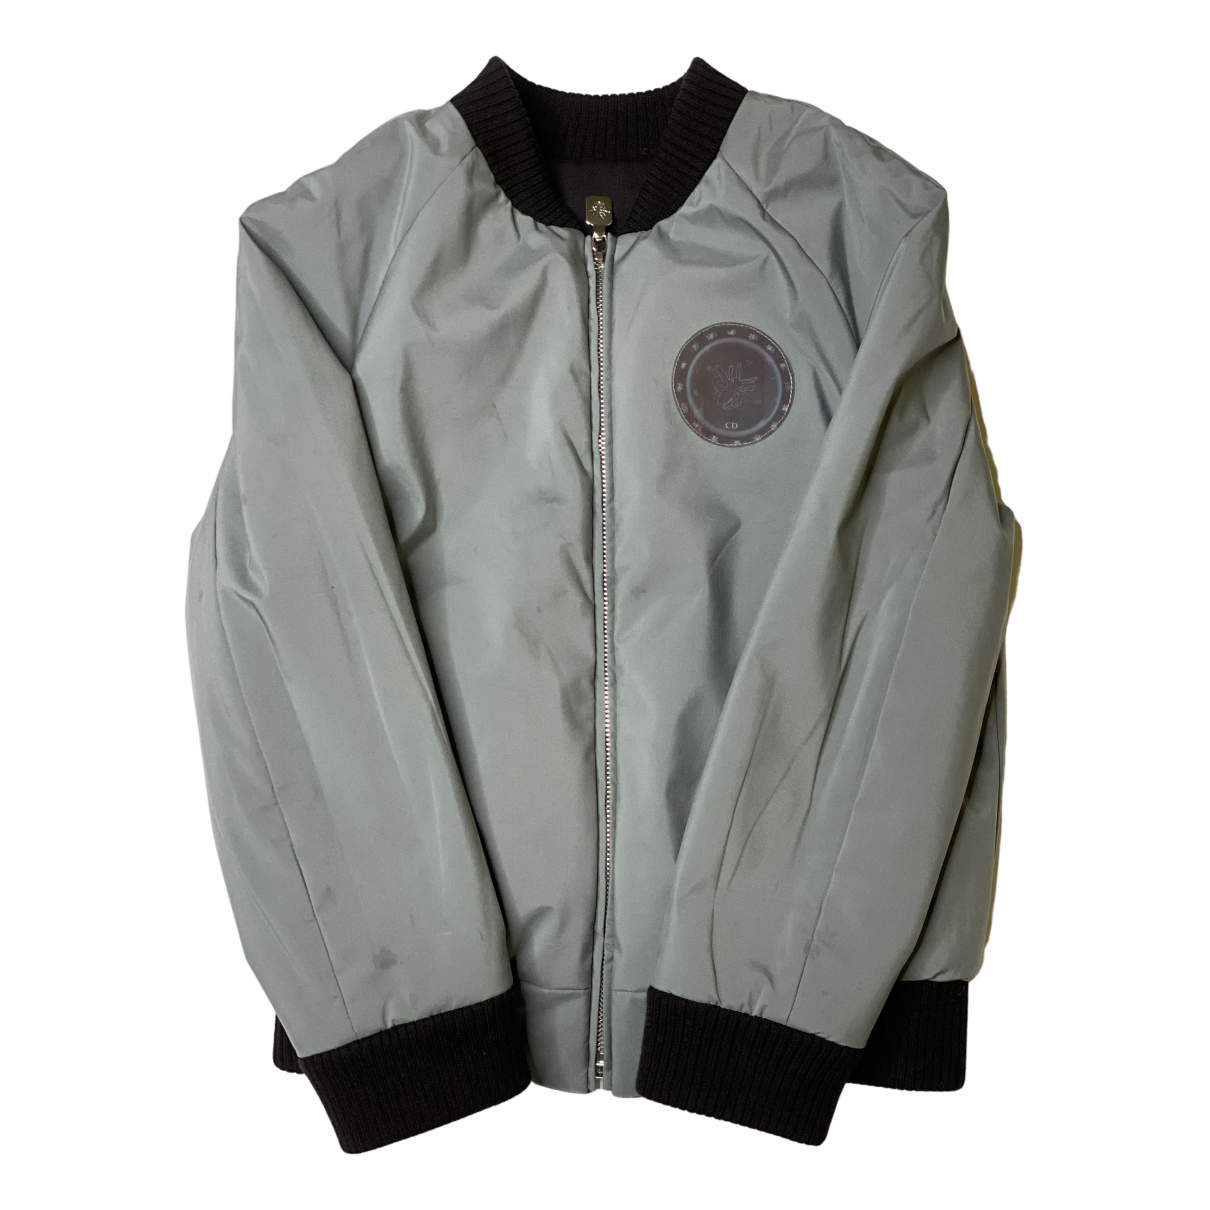 Dior N Grey Cotton jacket & coat for Kids 8 years - until 50 inches UK